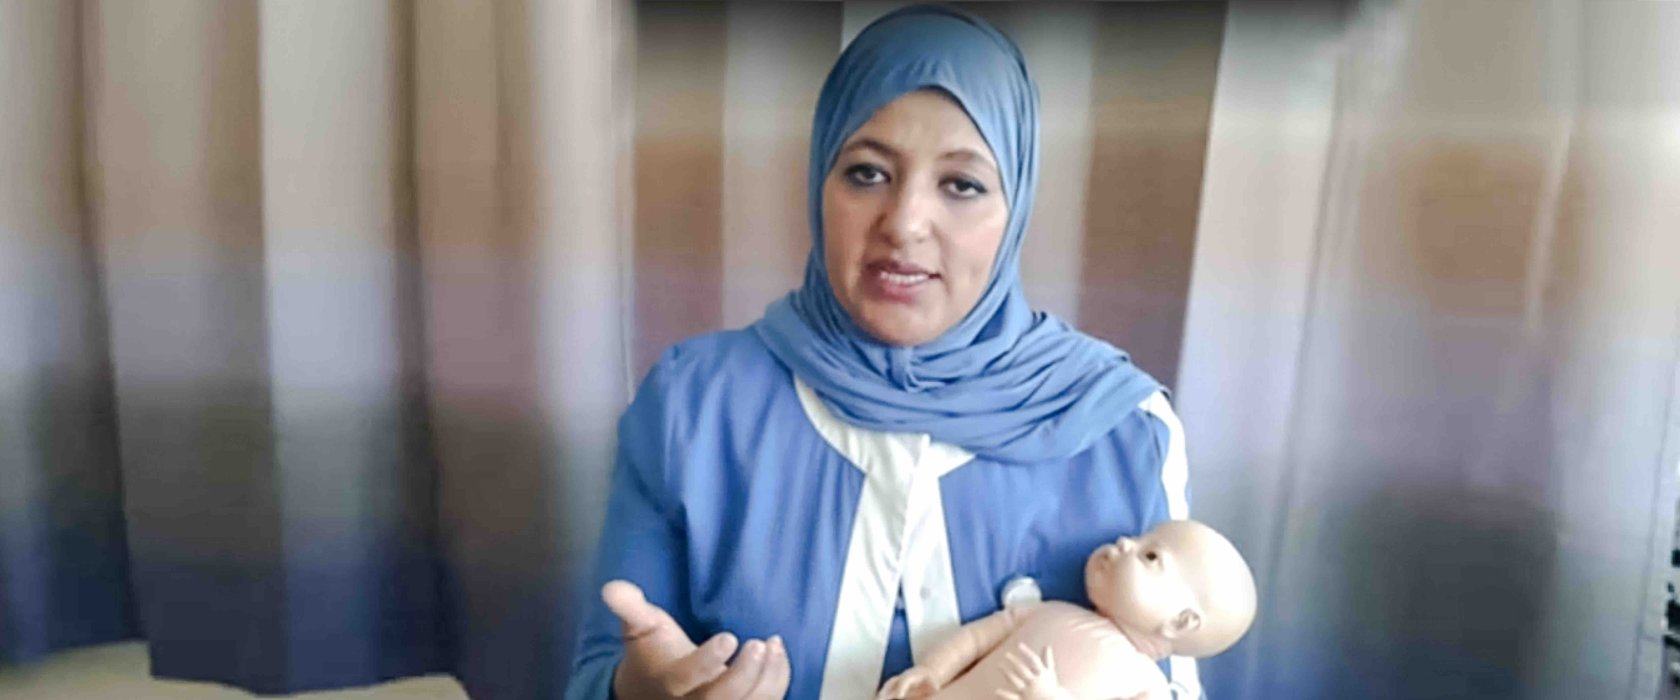 QF webinar highlights importance of breastfeeding for mother and baby